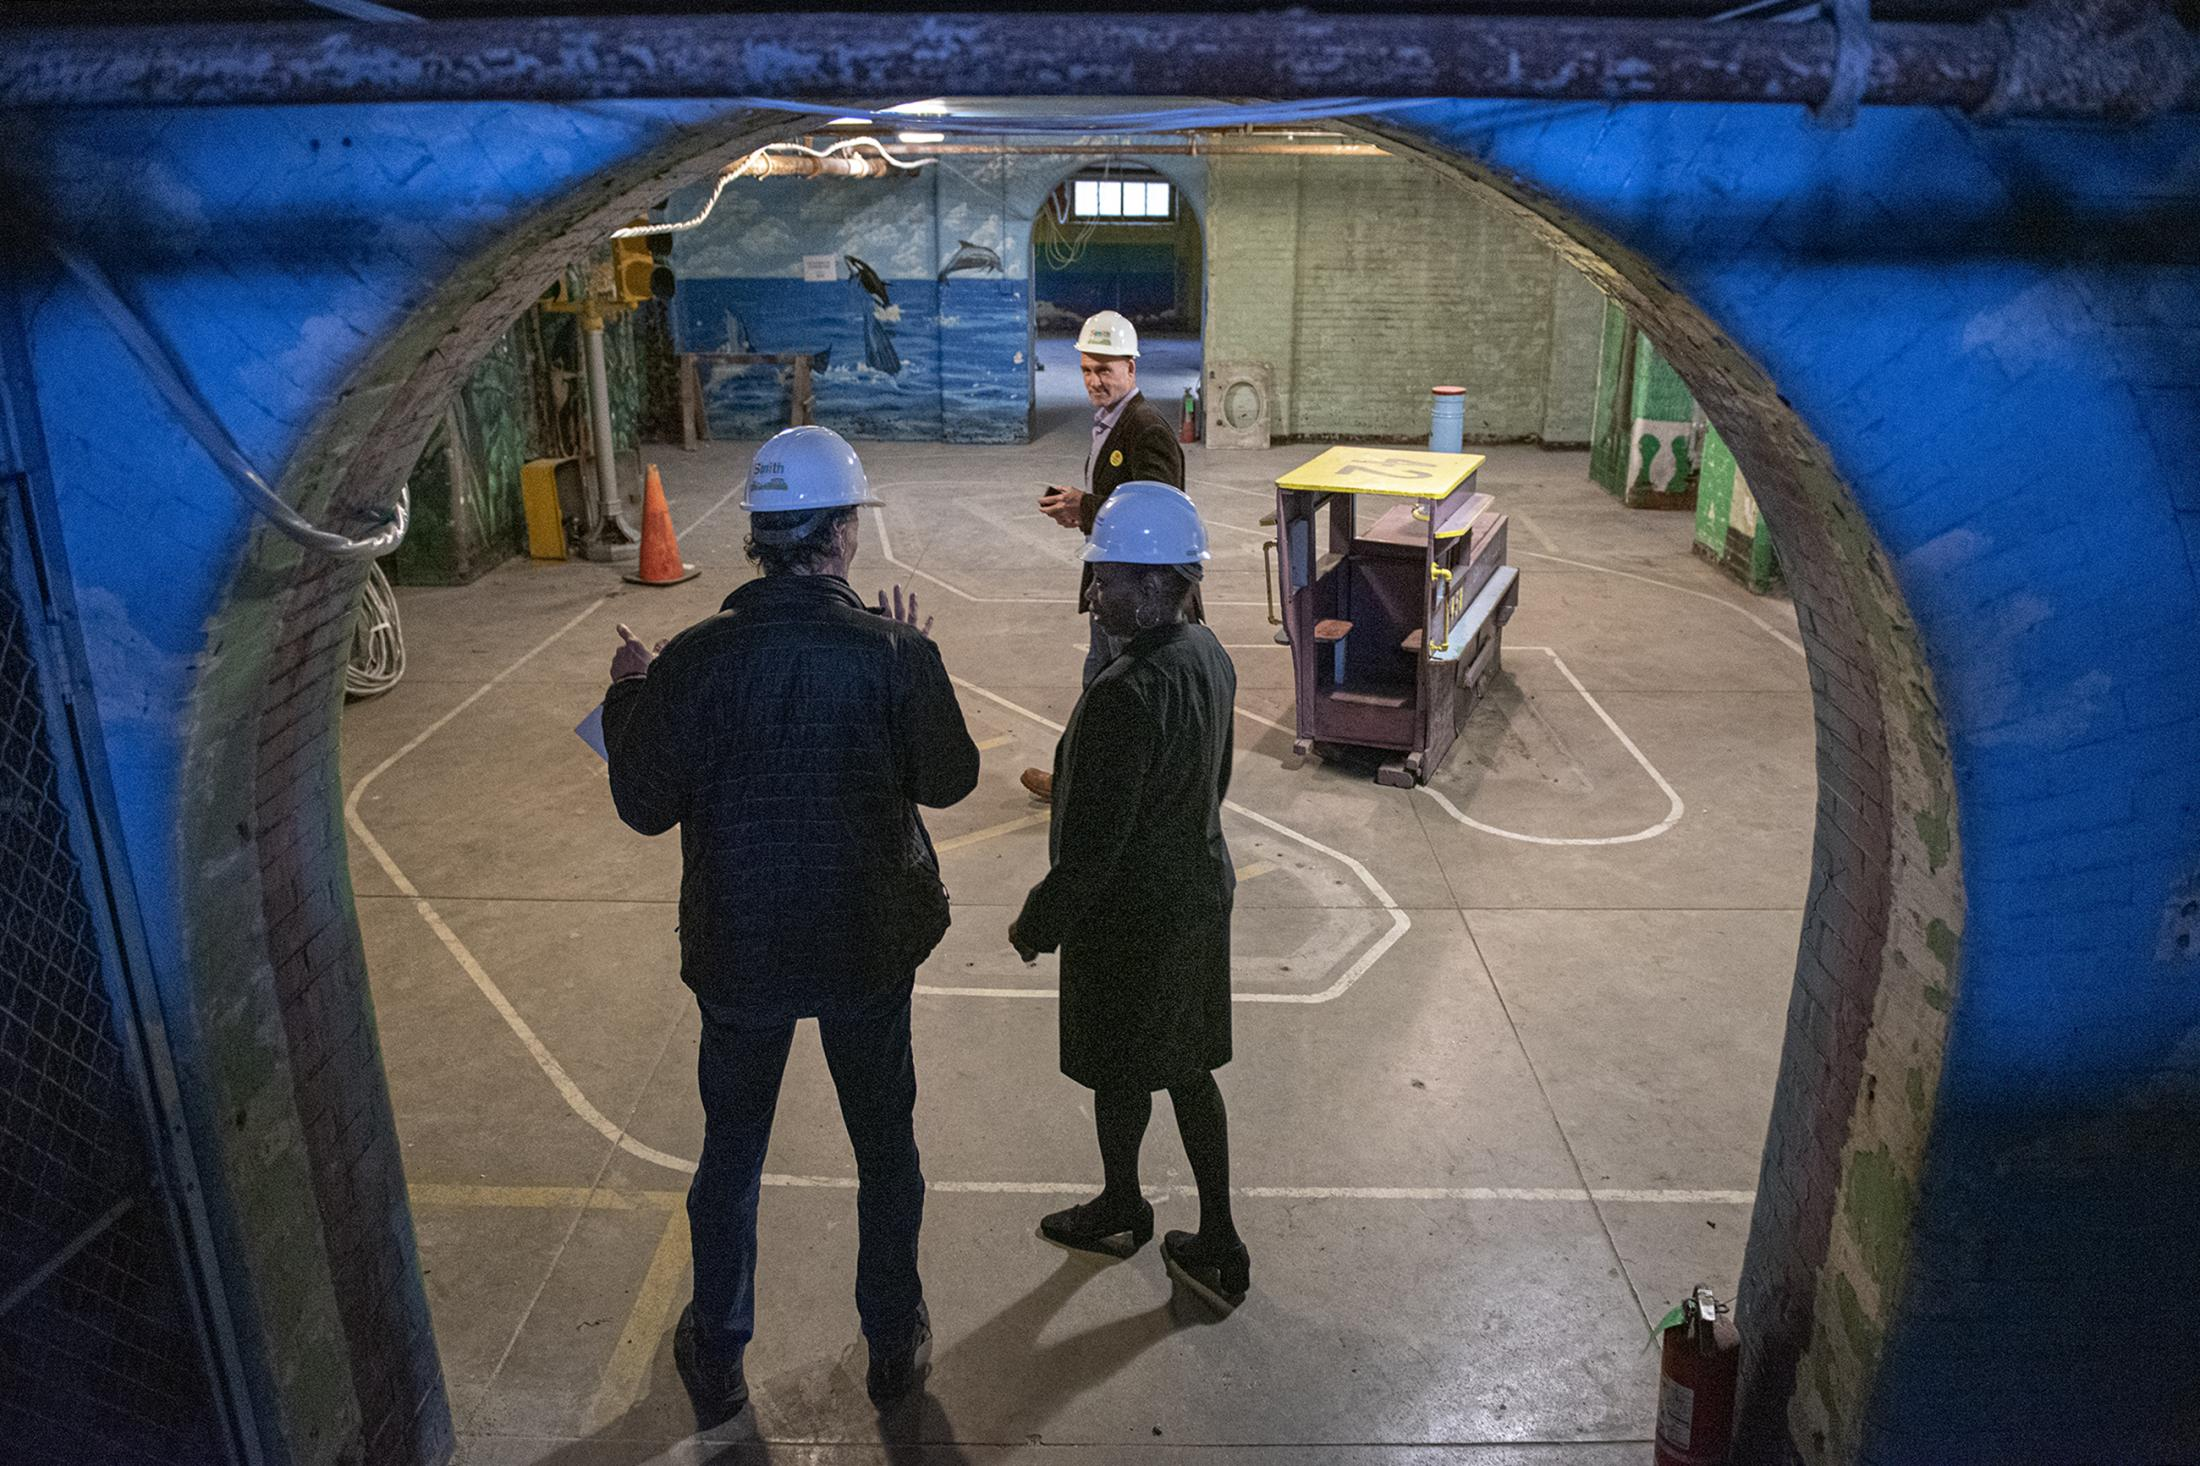 Frances Hovver, the executive director of Smith Memorial Playground & Playhouse, gives a tour inside the Playhouse on Sat, Oct. 26, 2019, in Philadelphia, Pa.